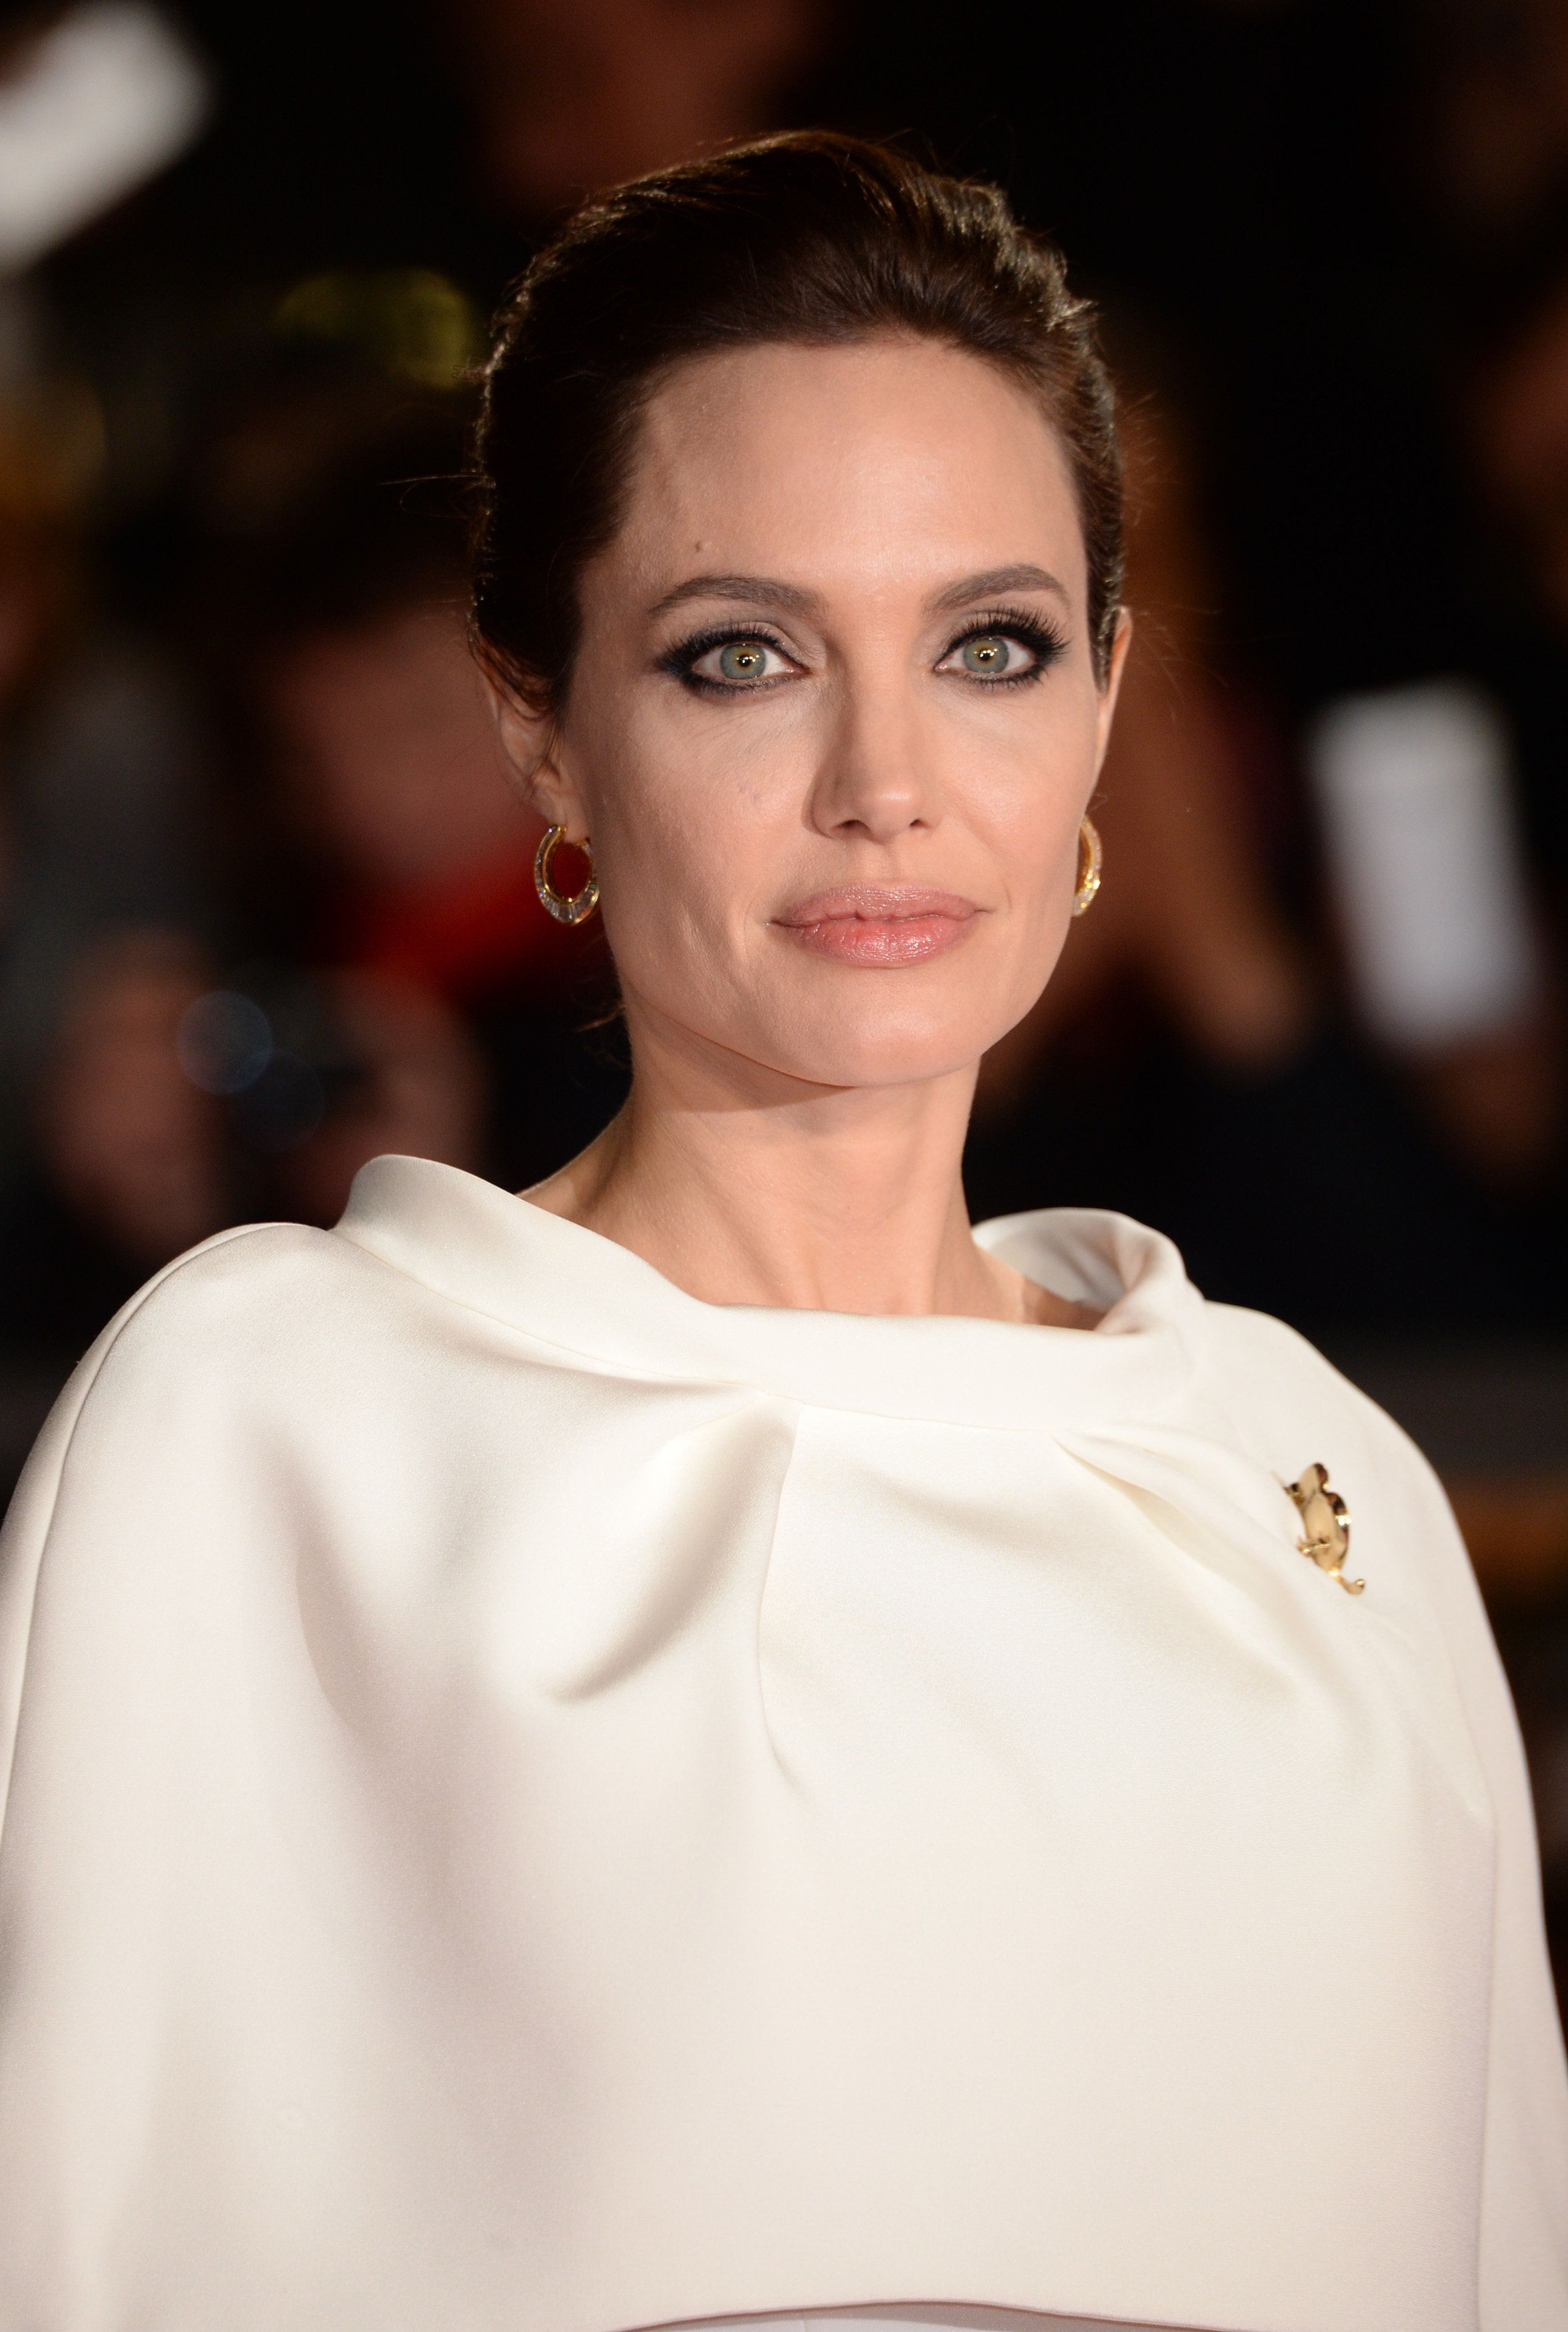 Angelina Jolie Faces Backlash Over Process For Casting Cambodian Children In Netflix